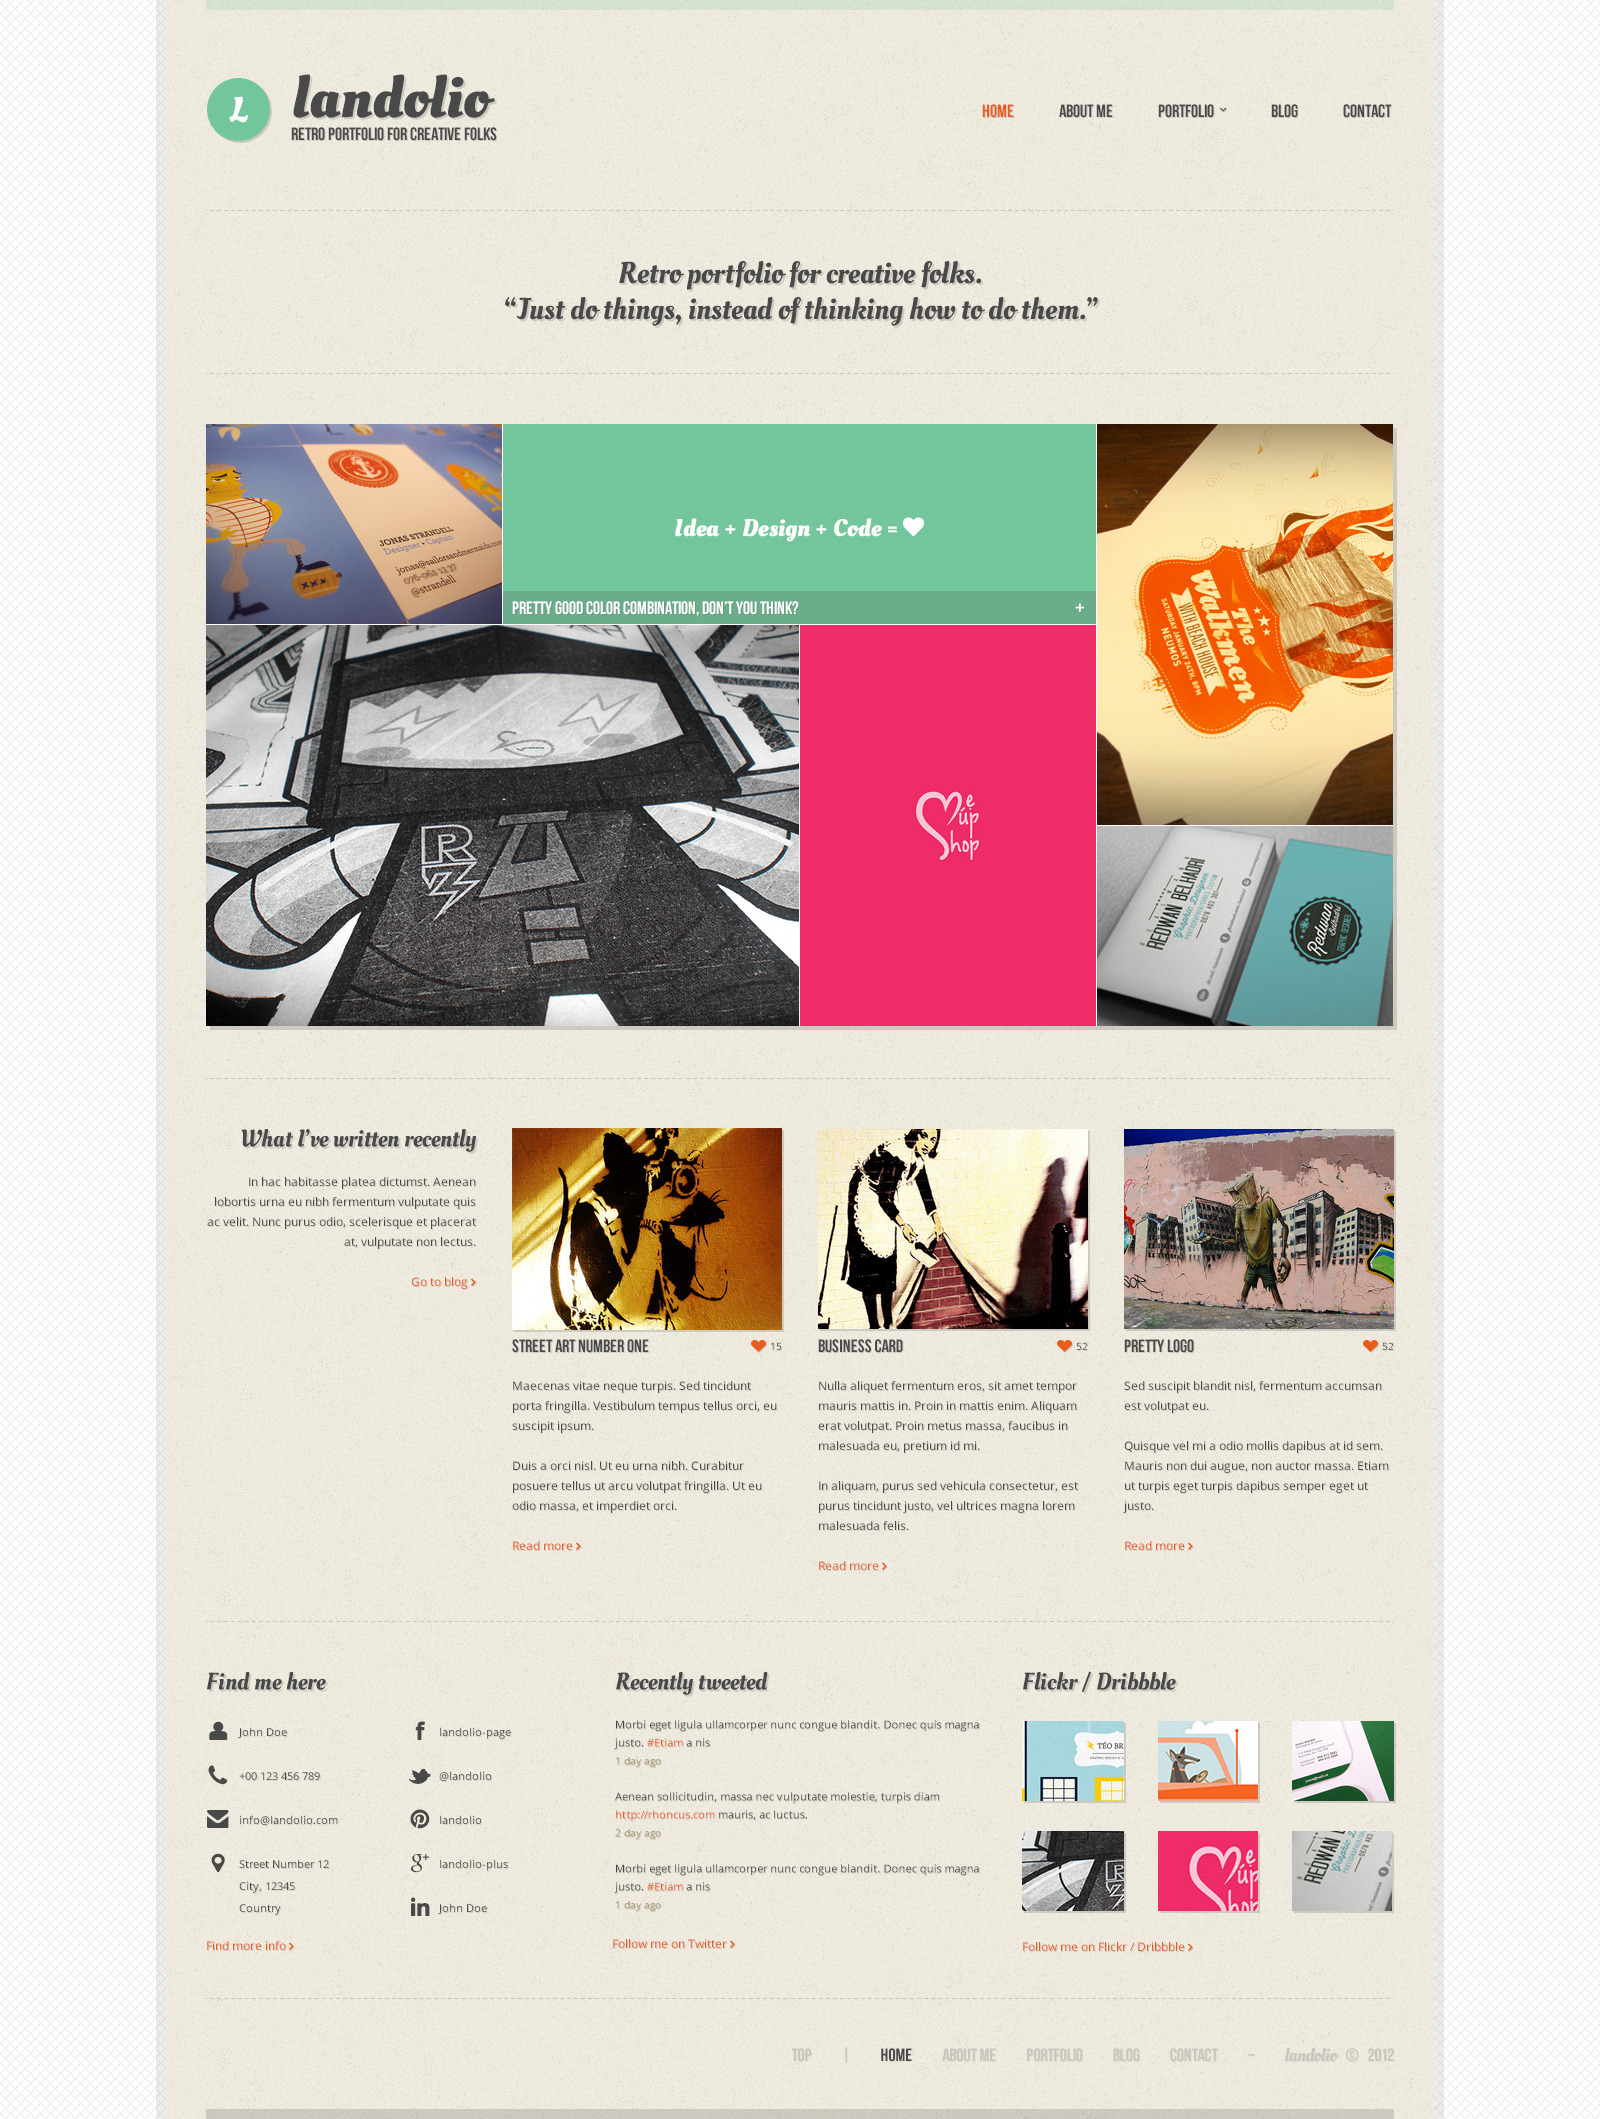 Landolio - Retro portfolio for creative folks